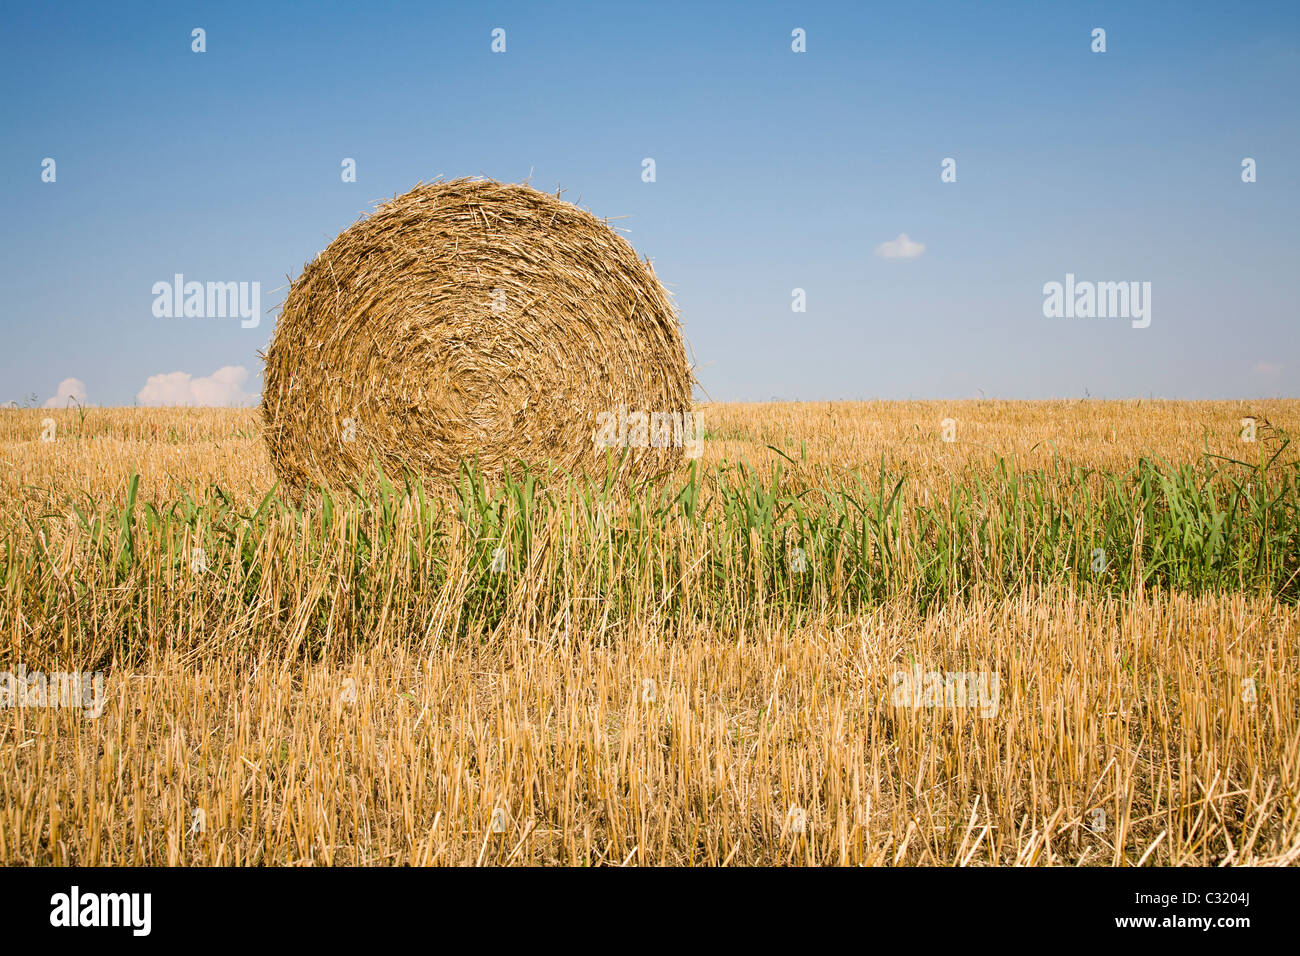 bale of the straw - harvest - Stock Image